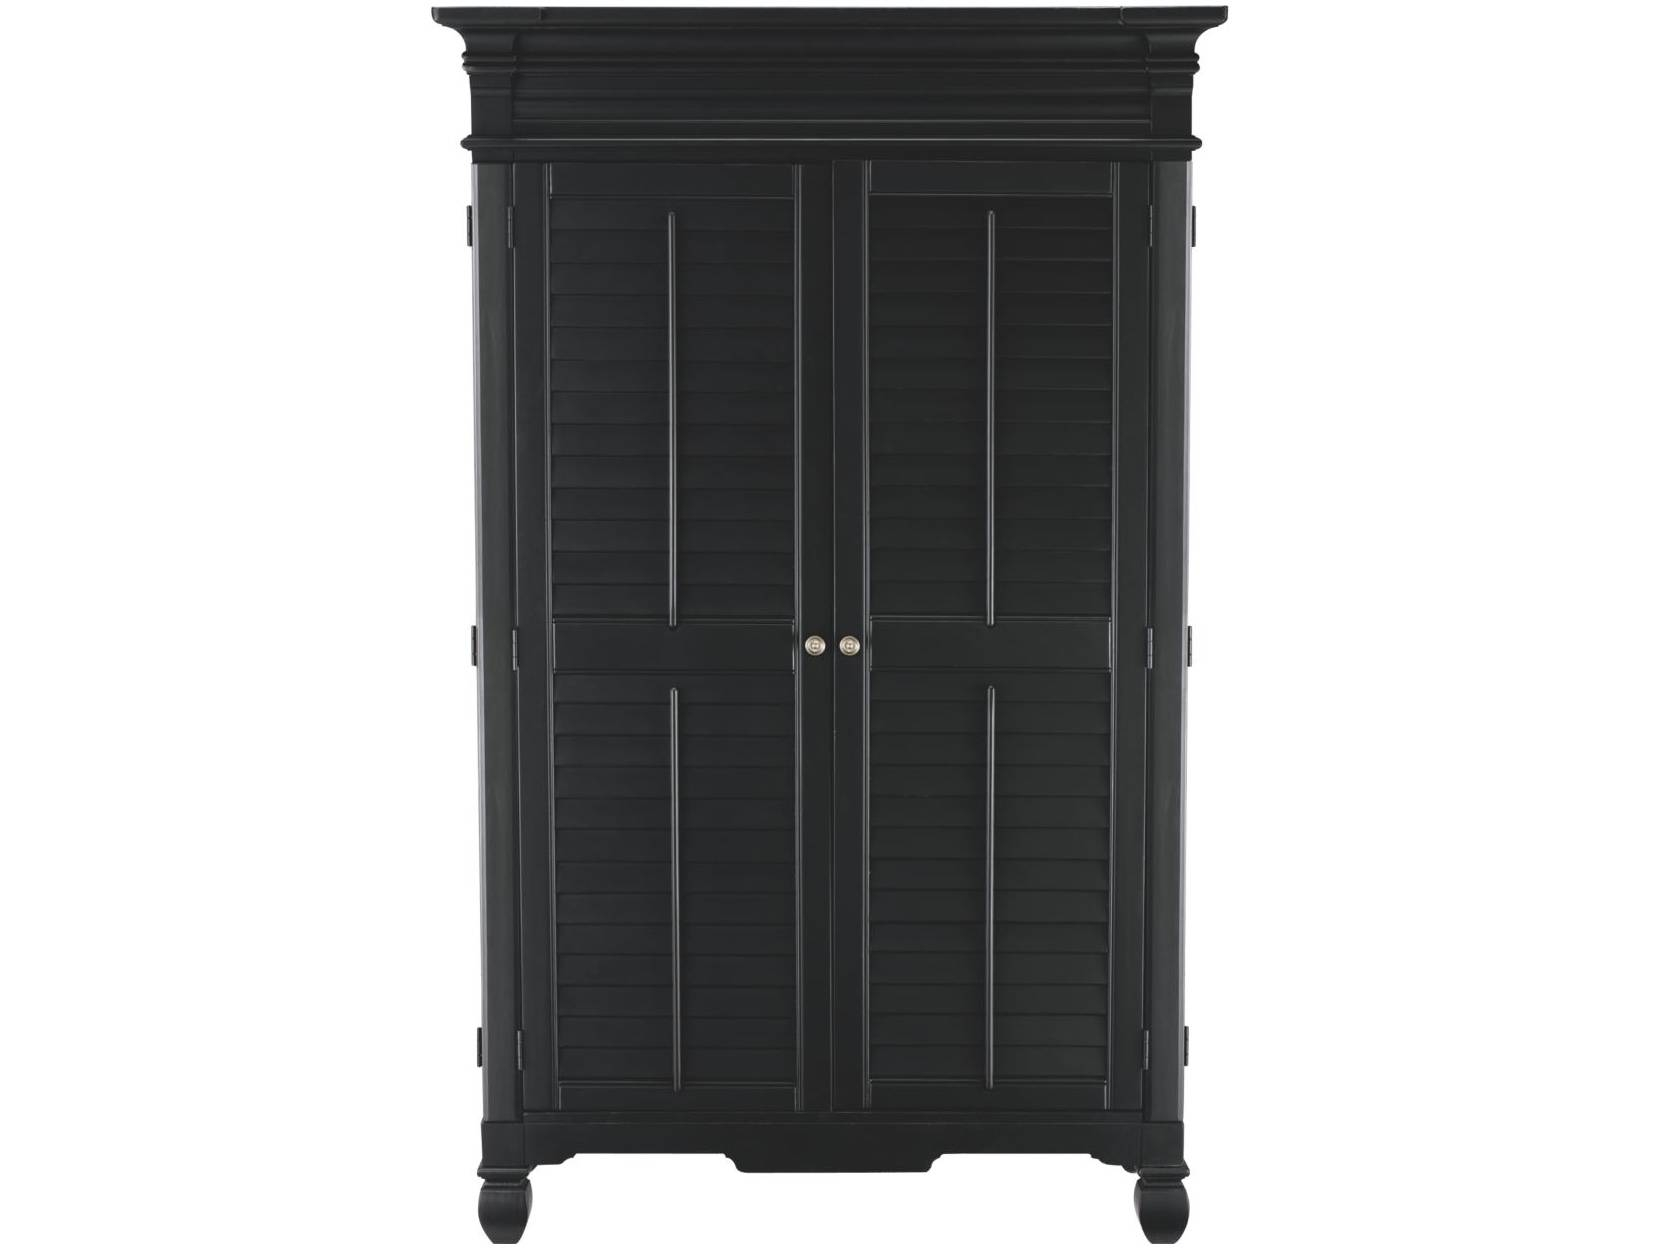 Armoire: Superb Masculine Black Armoire Design Furniture. Black regarding Black French Wardrobes (Image 4 of 15)